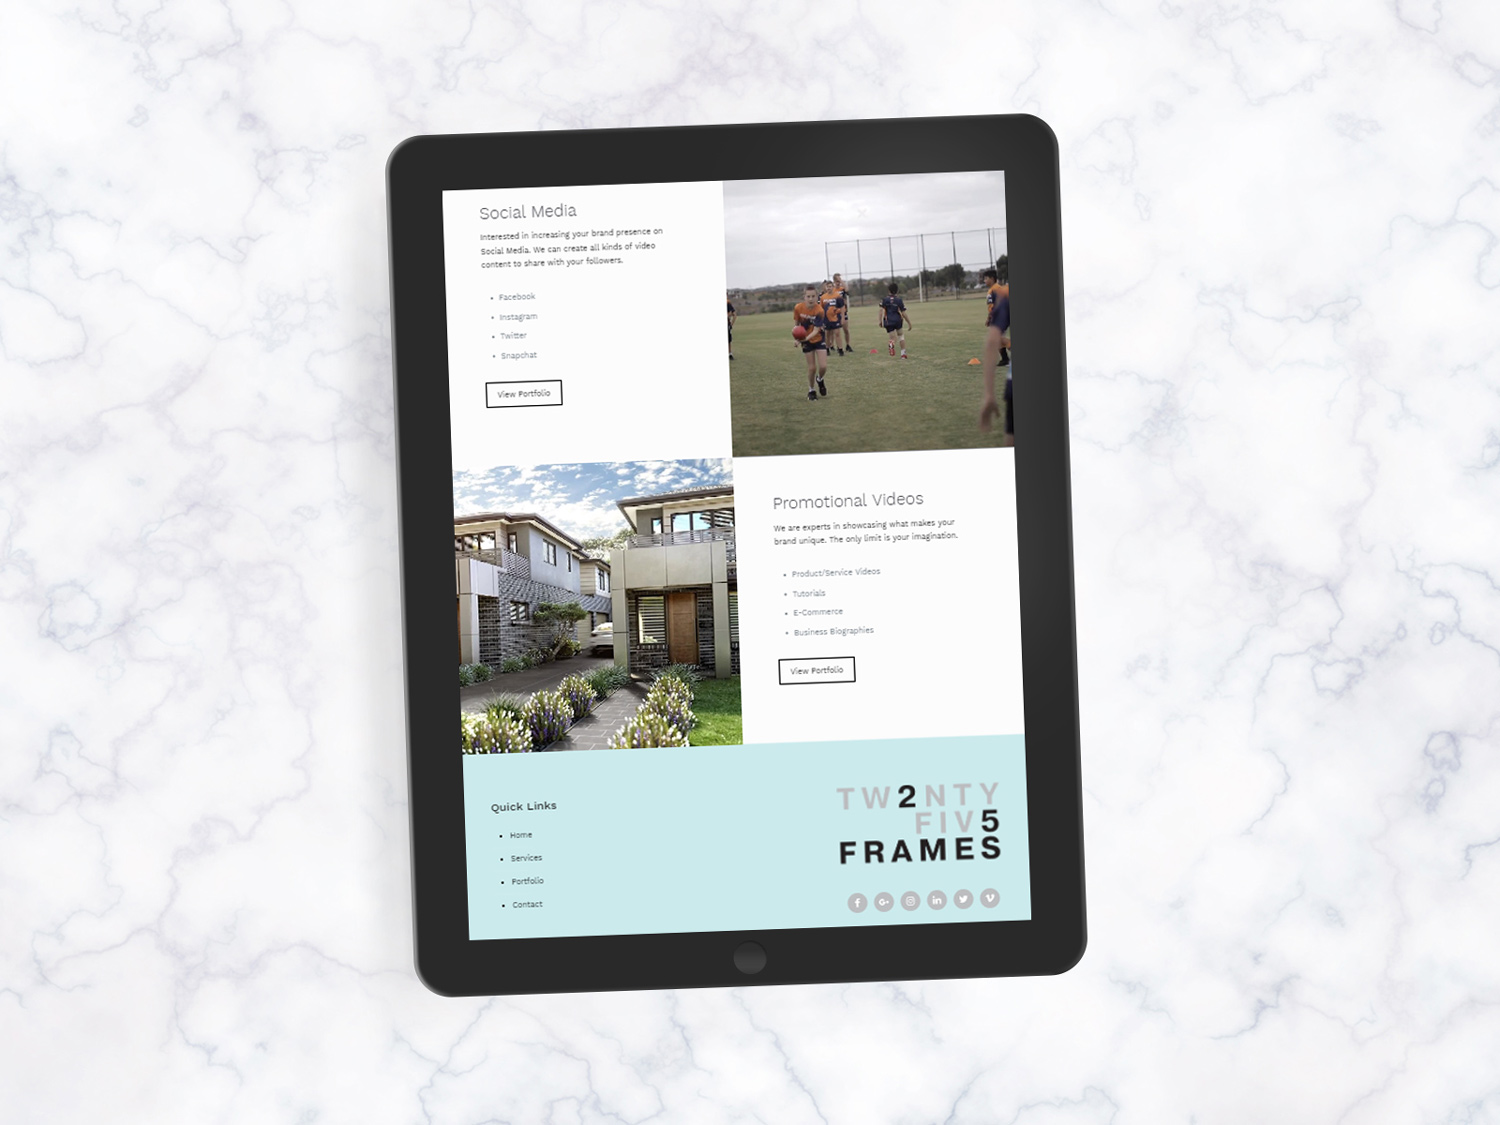 online tree ipad displaying 25 frames website on screen